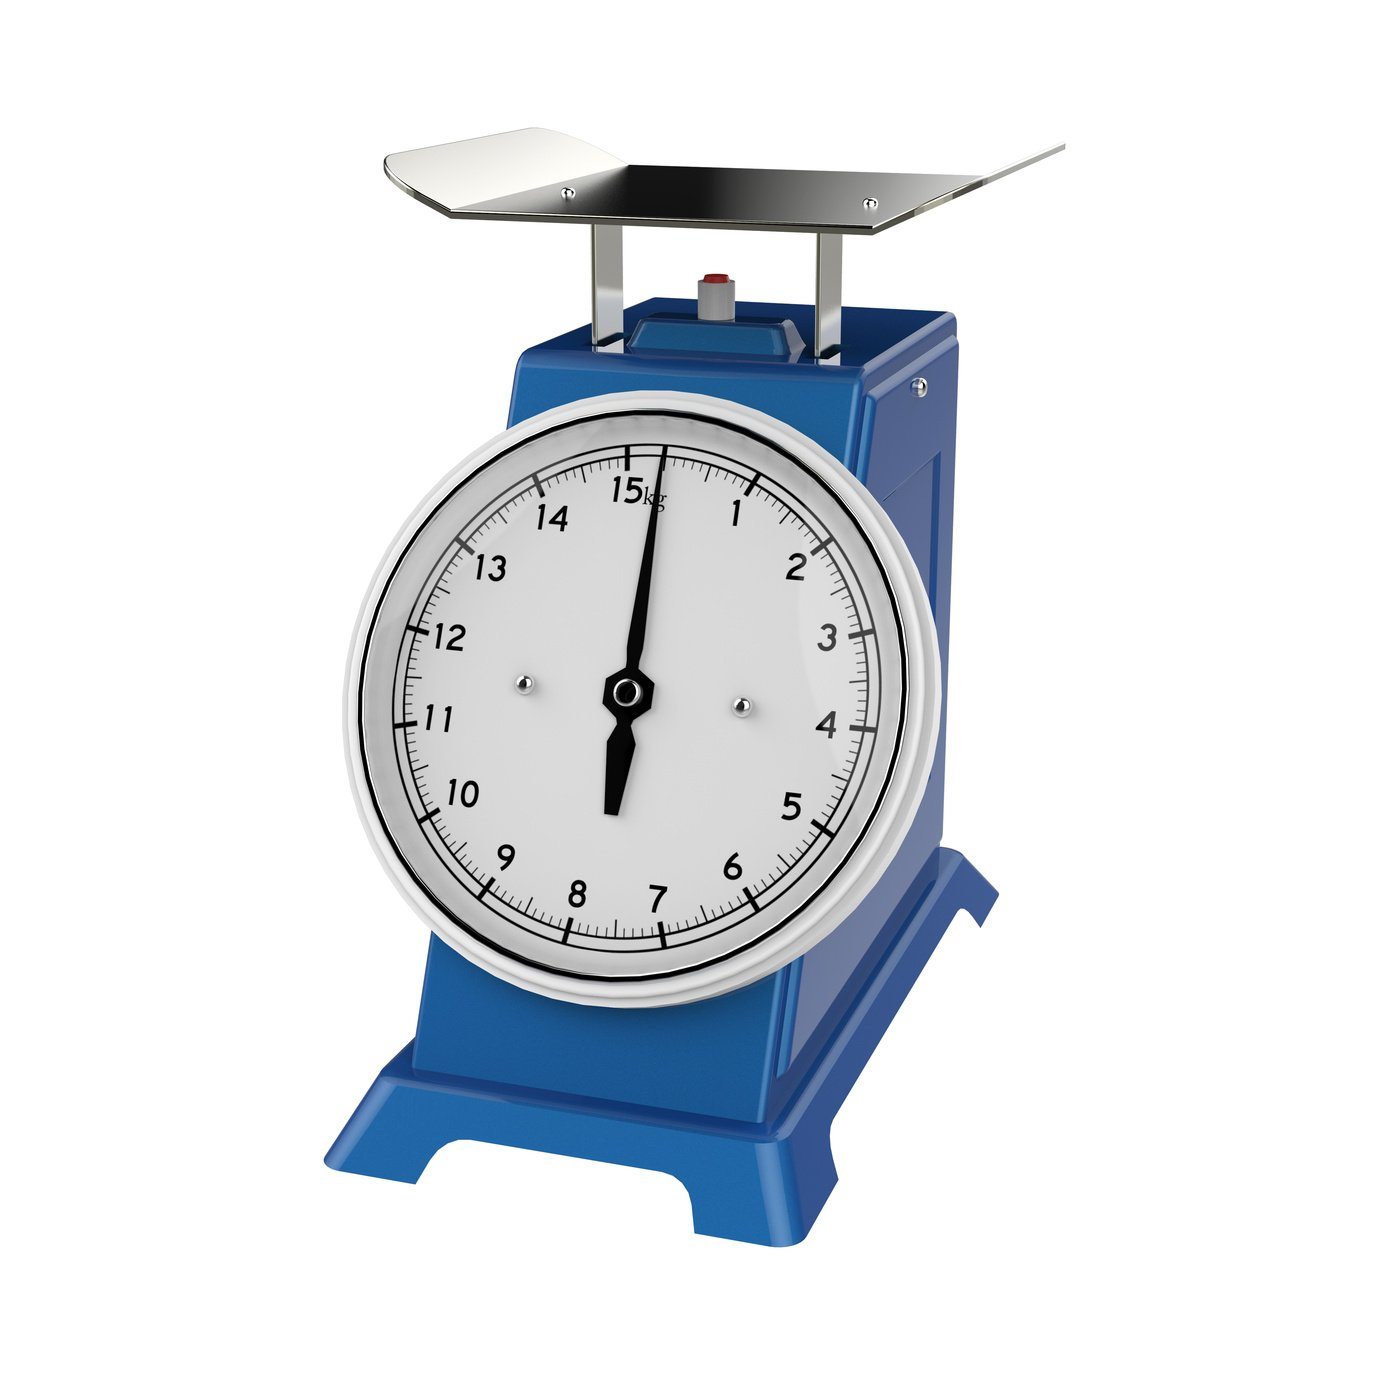 Weighing grain is important, but it is just as important to make sure that the weight is grain and not water weight.